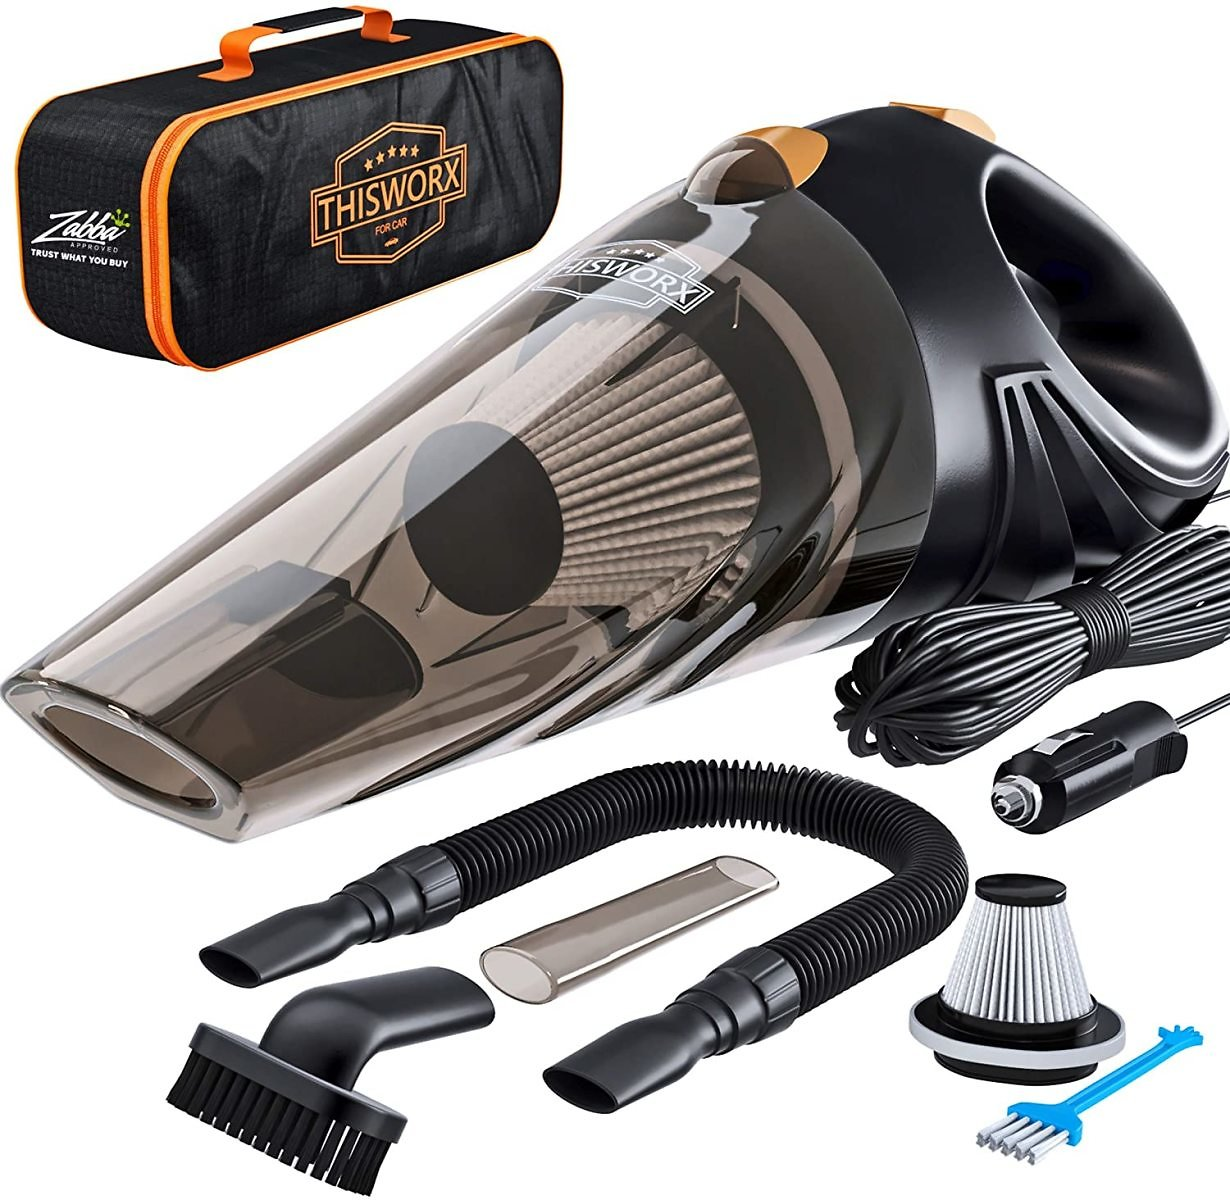 50% OffPortable Car Vacuum Cleaner: High Power Corded Handheld Vacuum w/ 16 Foot  - 12V - Best Car & Auto Accessories Kit F